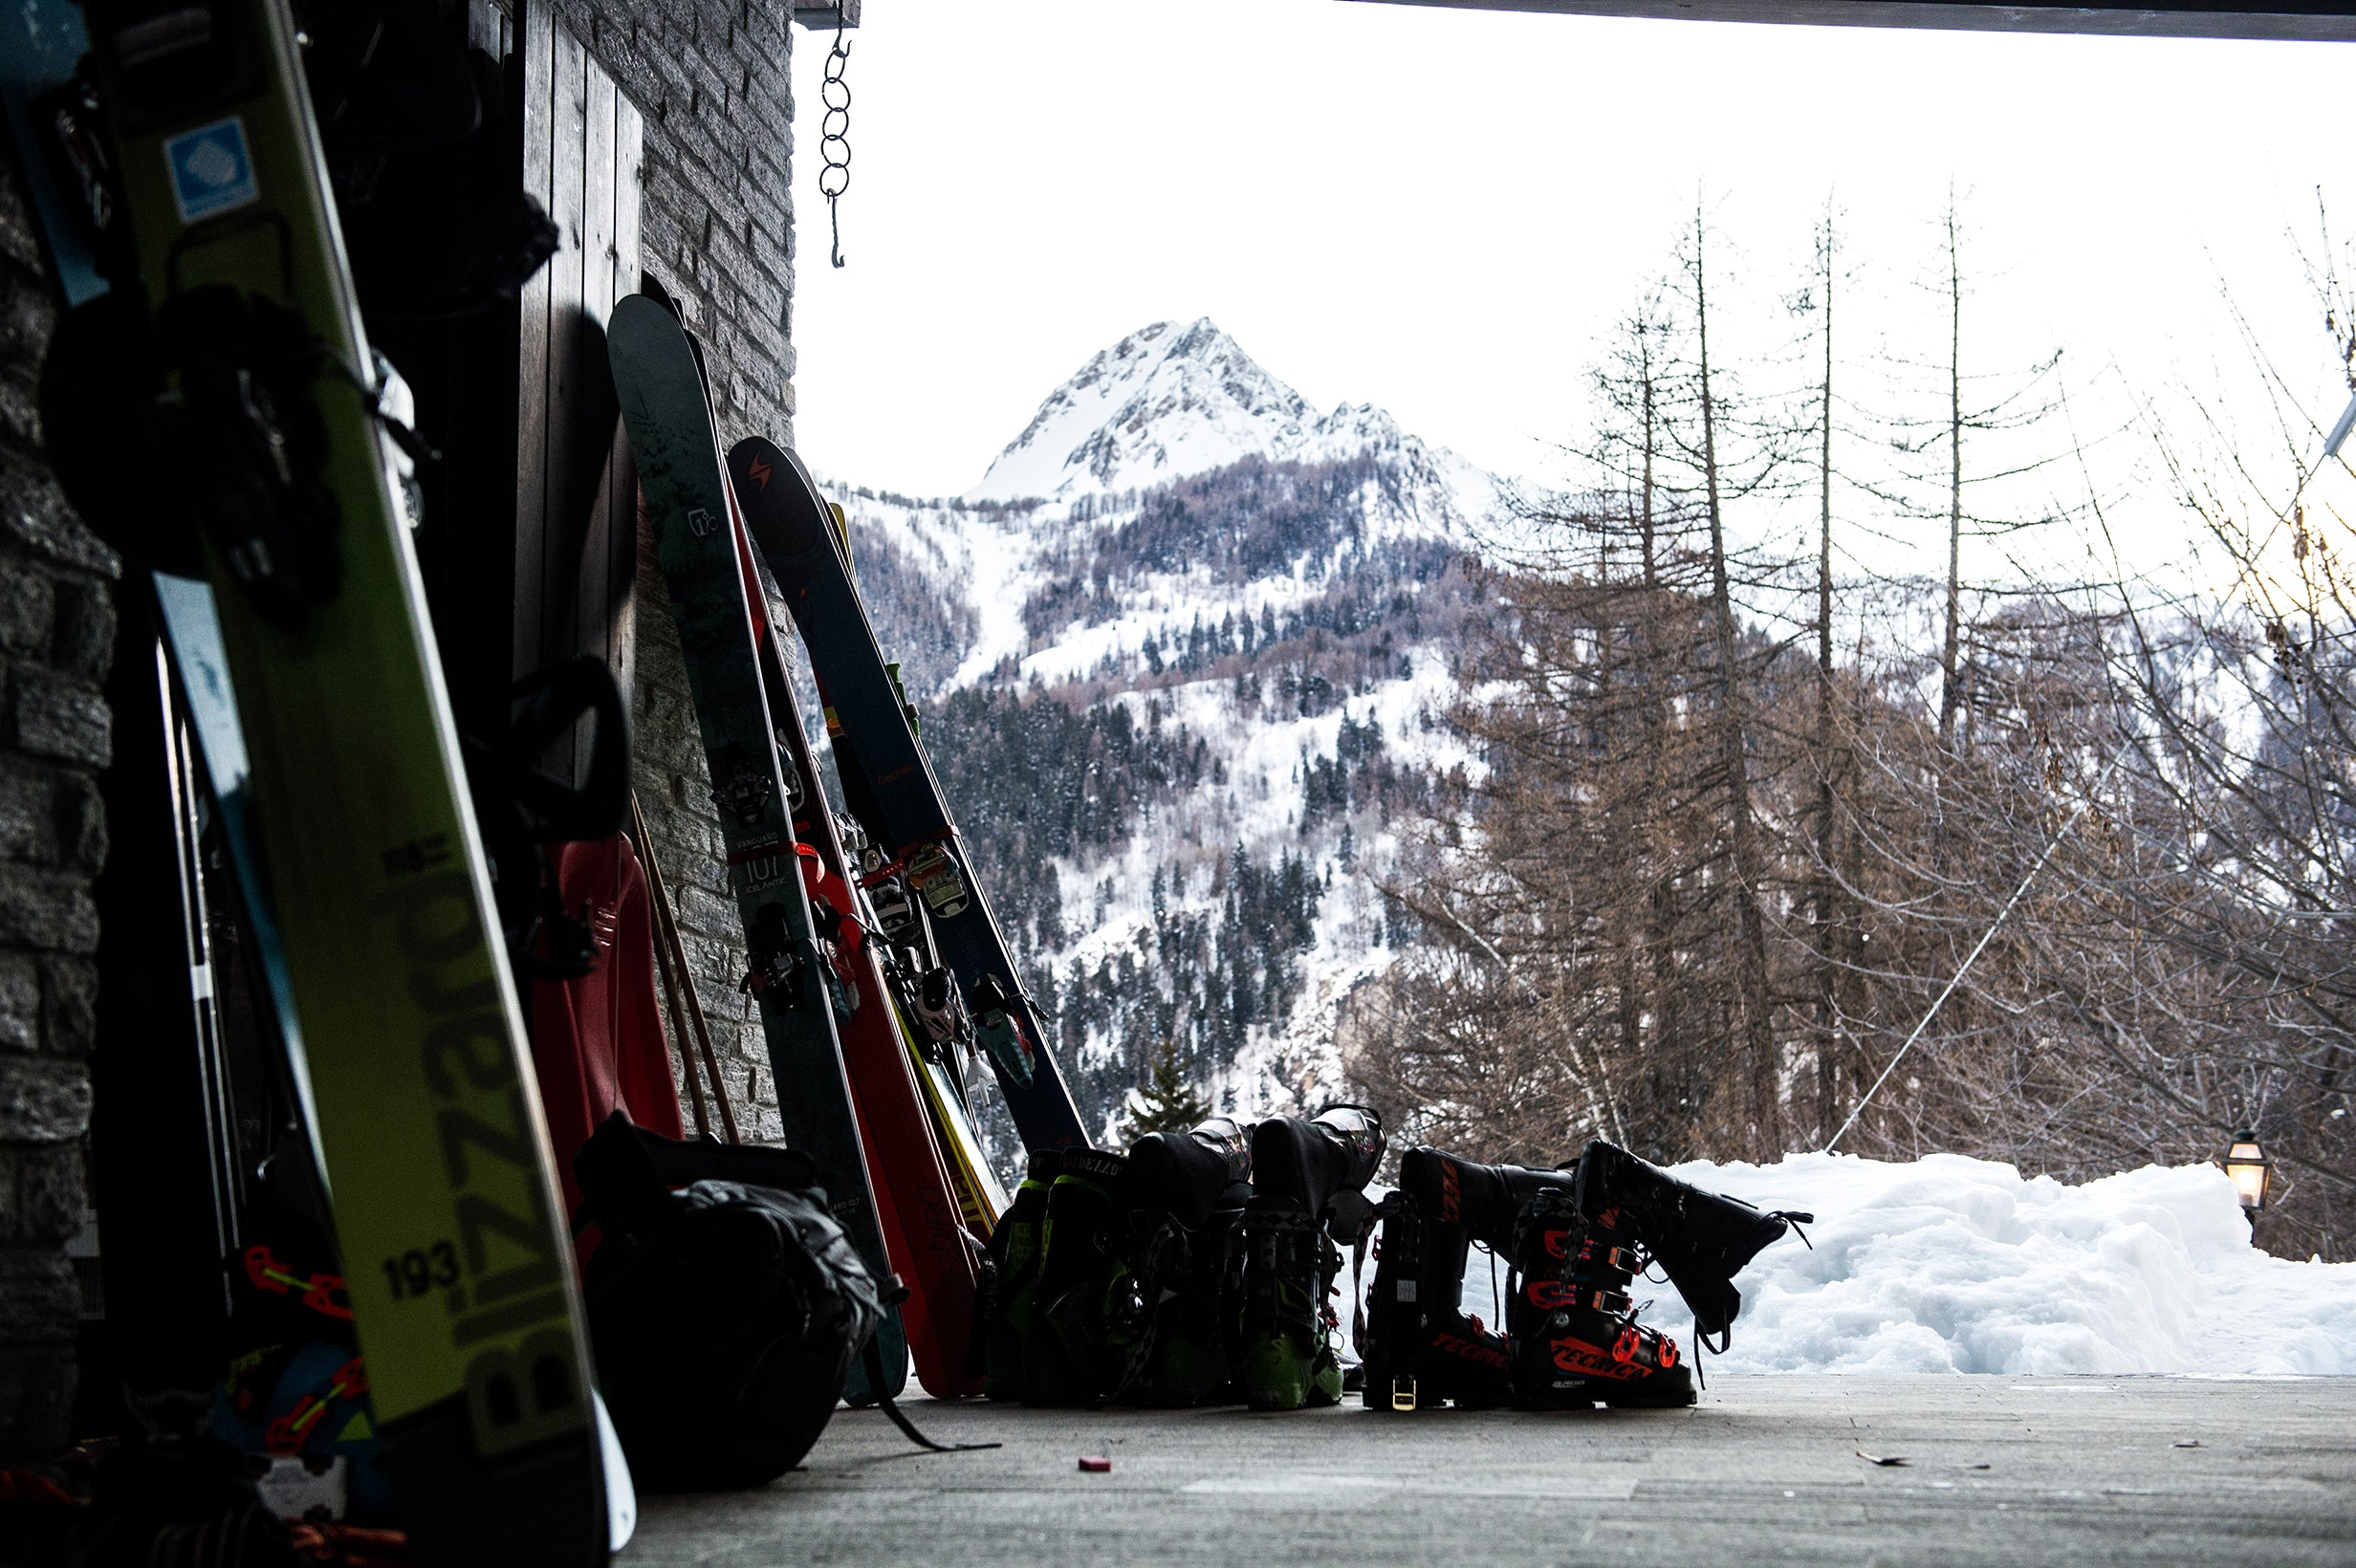 Ski gear drying on patio